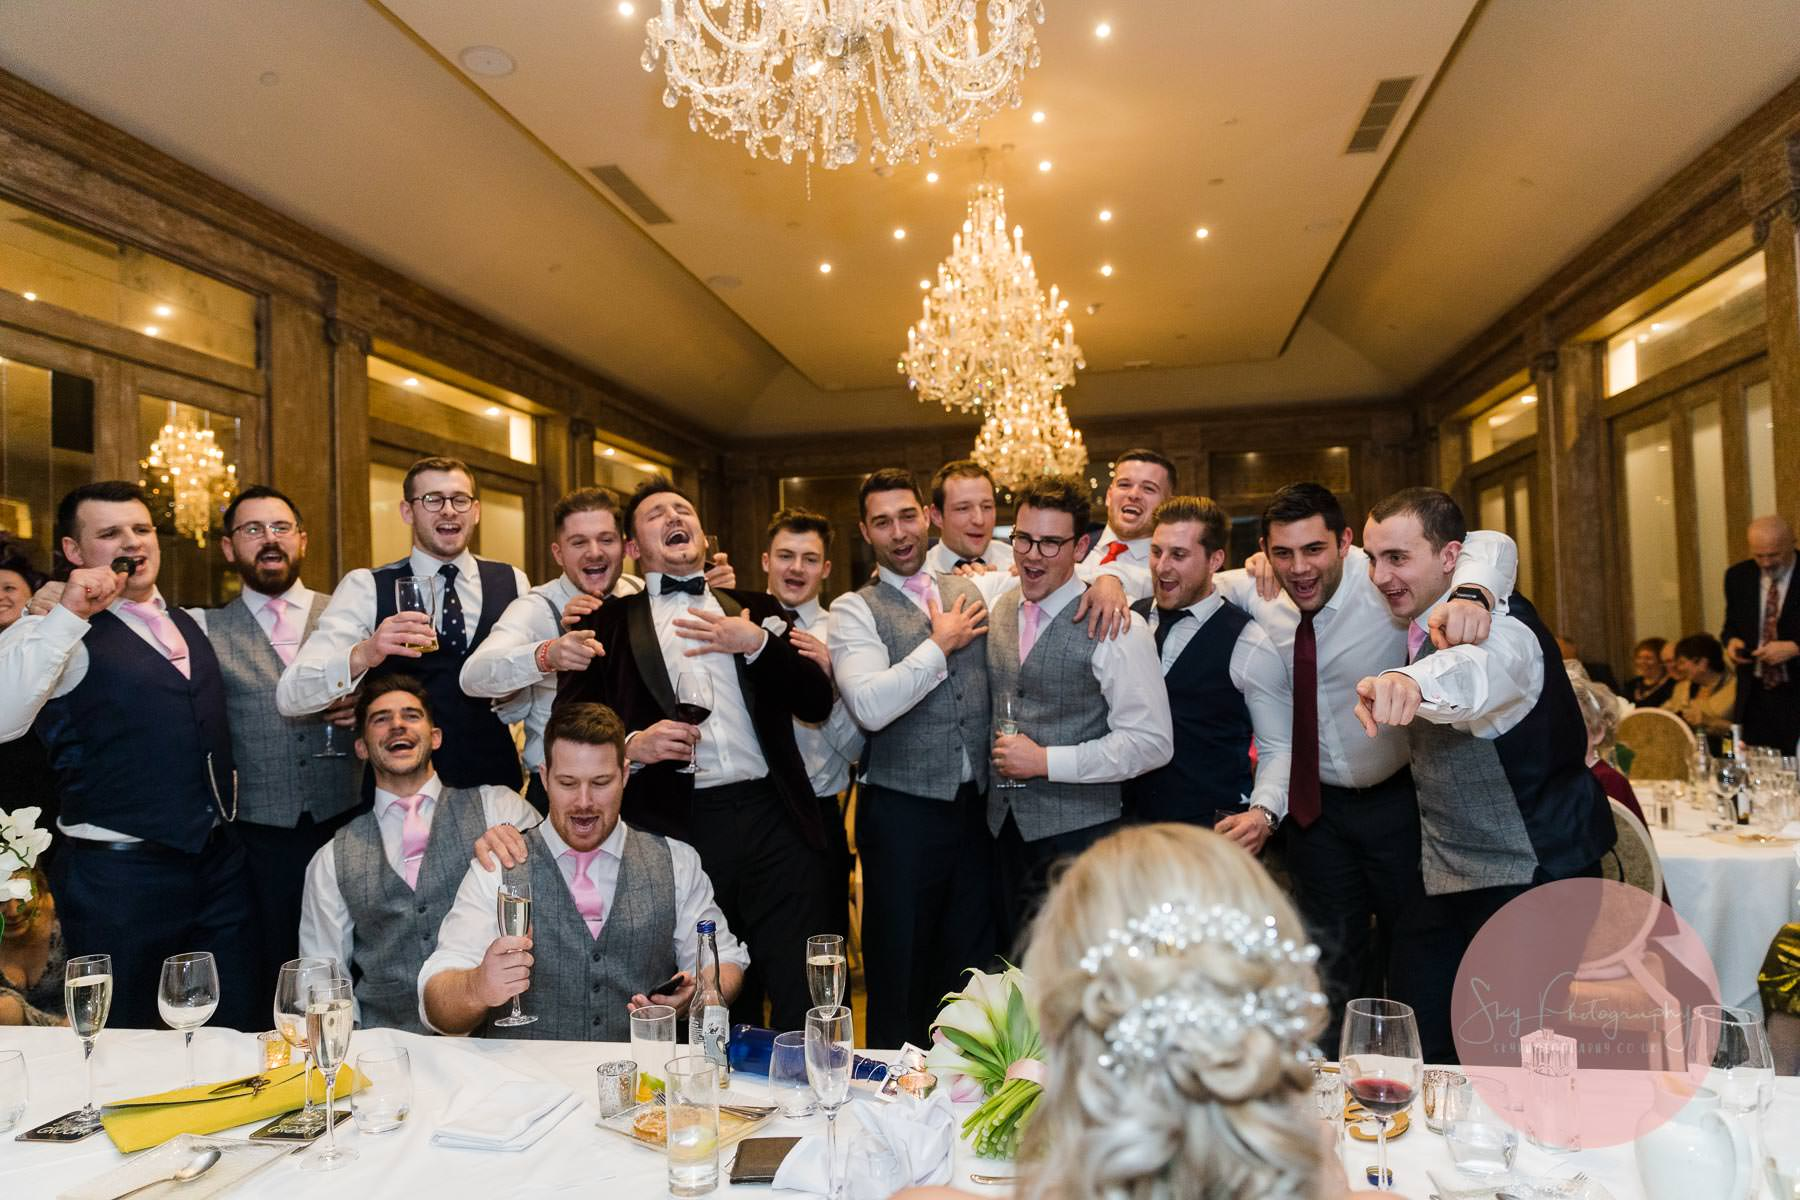 All the groomsmen singing to the bride a great wedding speech idea